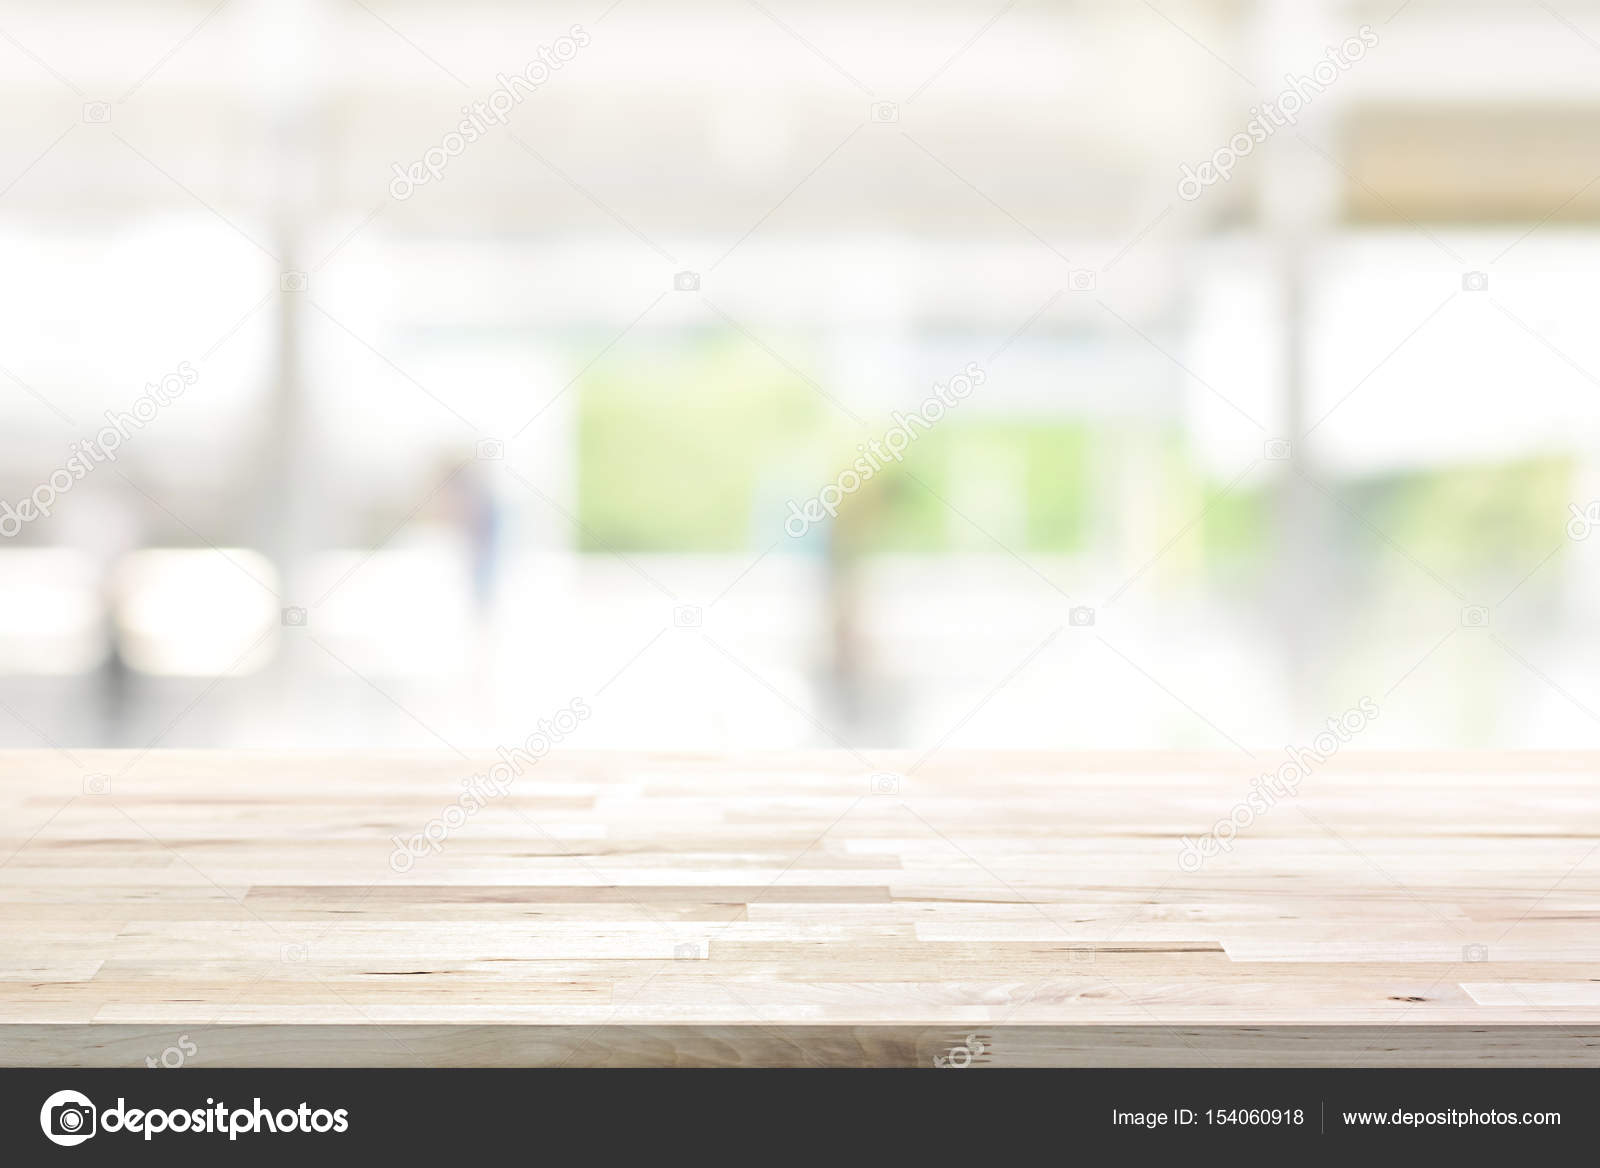 Wood table top on blur kitchen window background 9